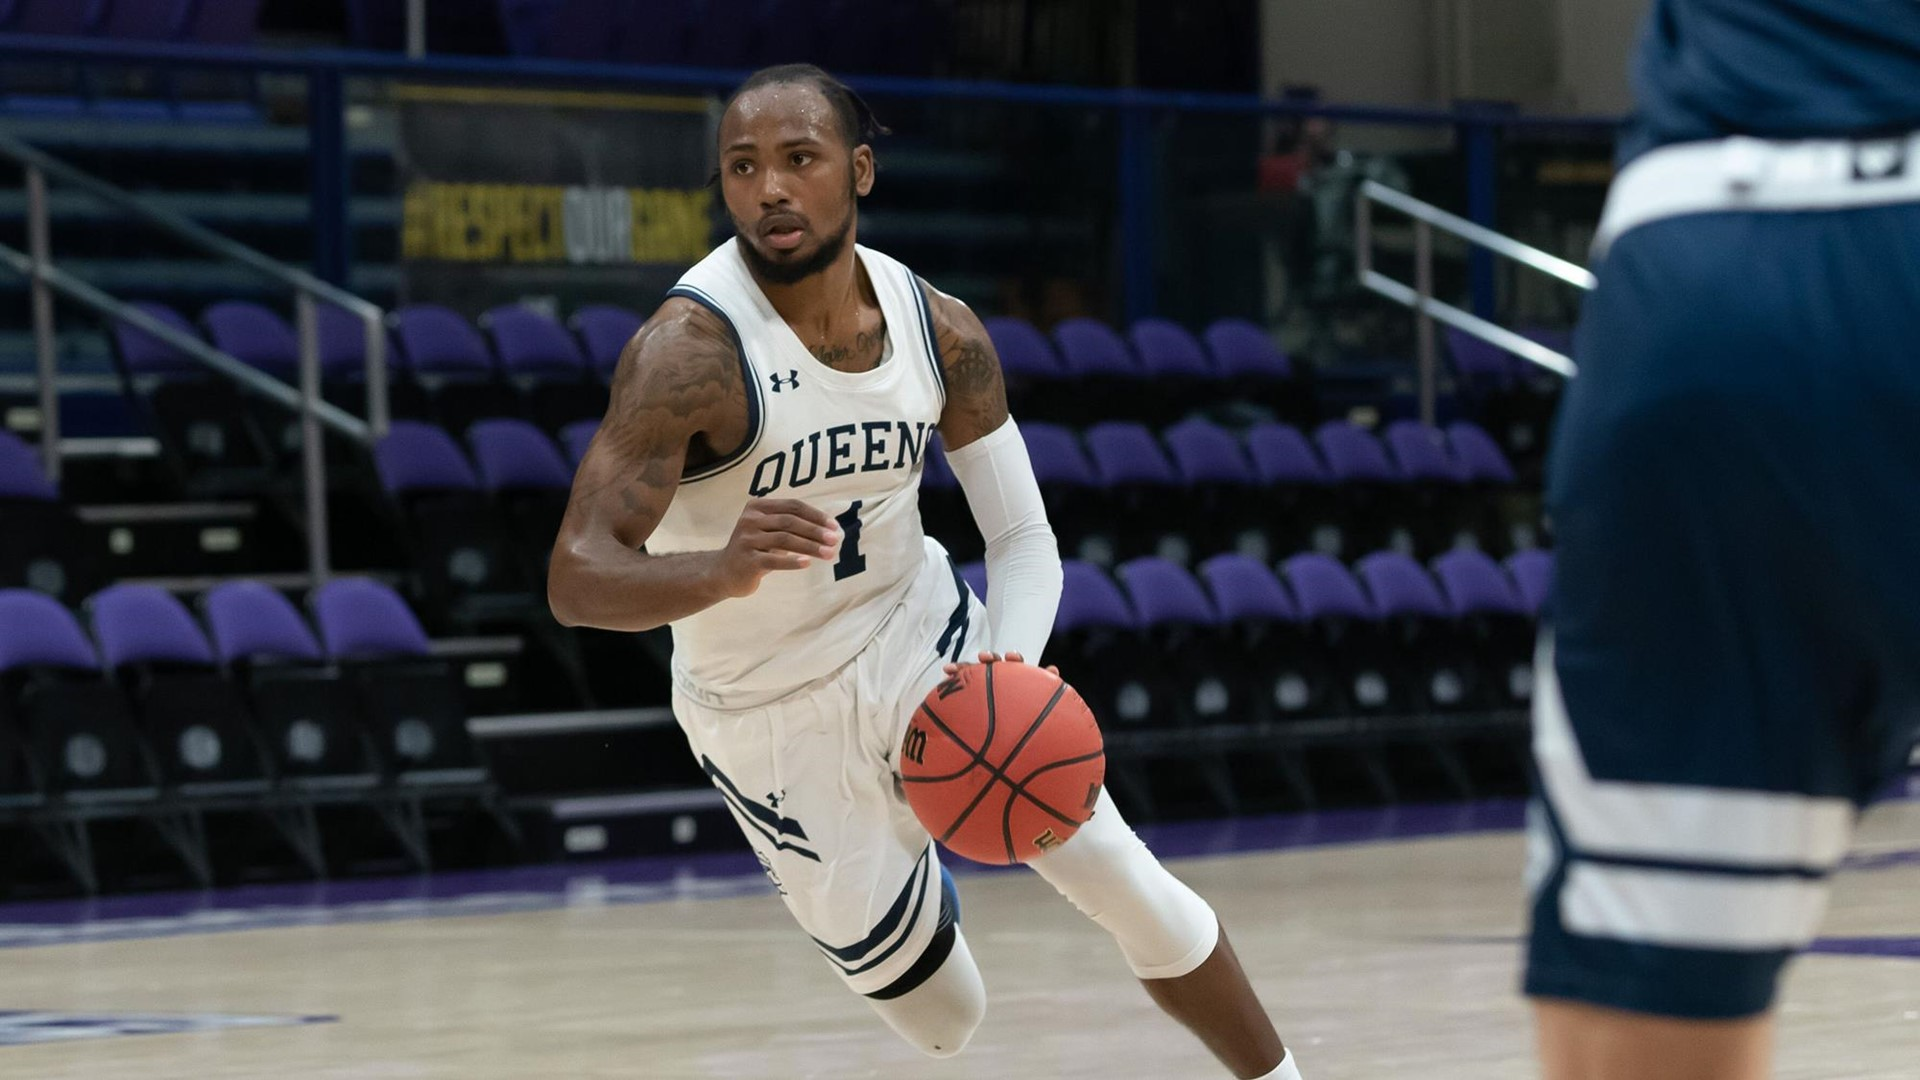 Daniel Carr 2019 2020 Men S Basketball Queens University Of Charlotte Athletics